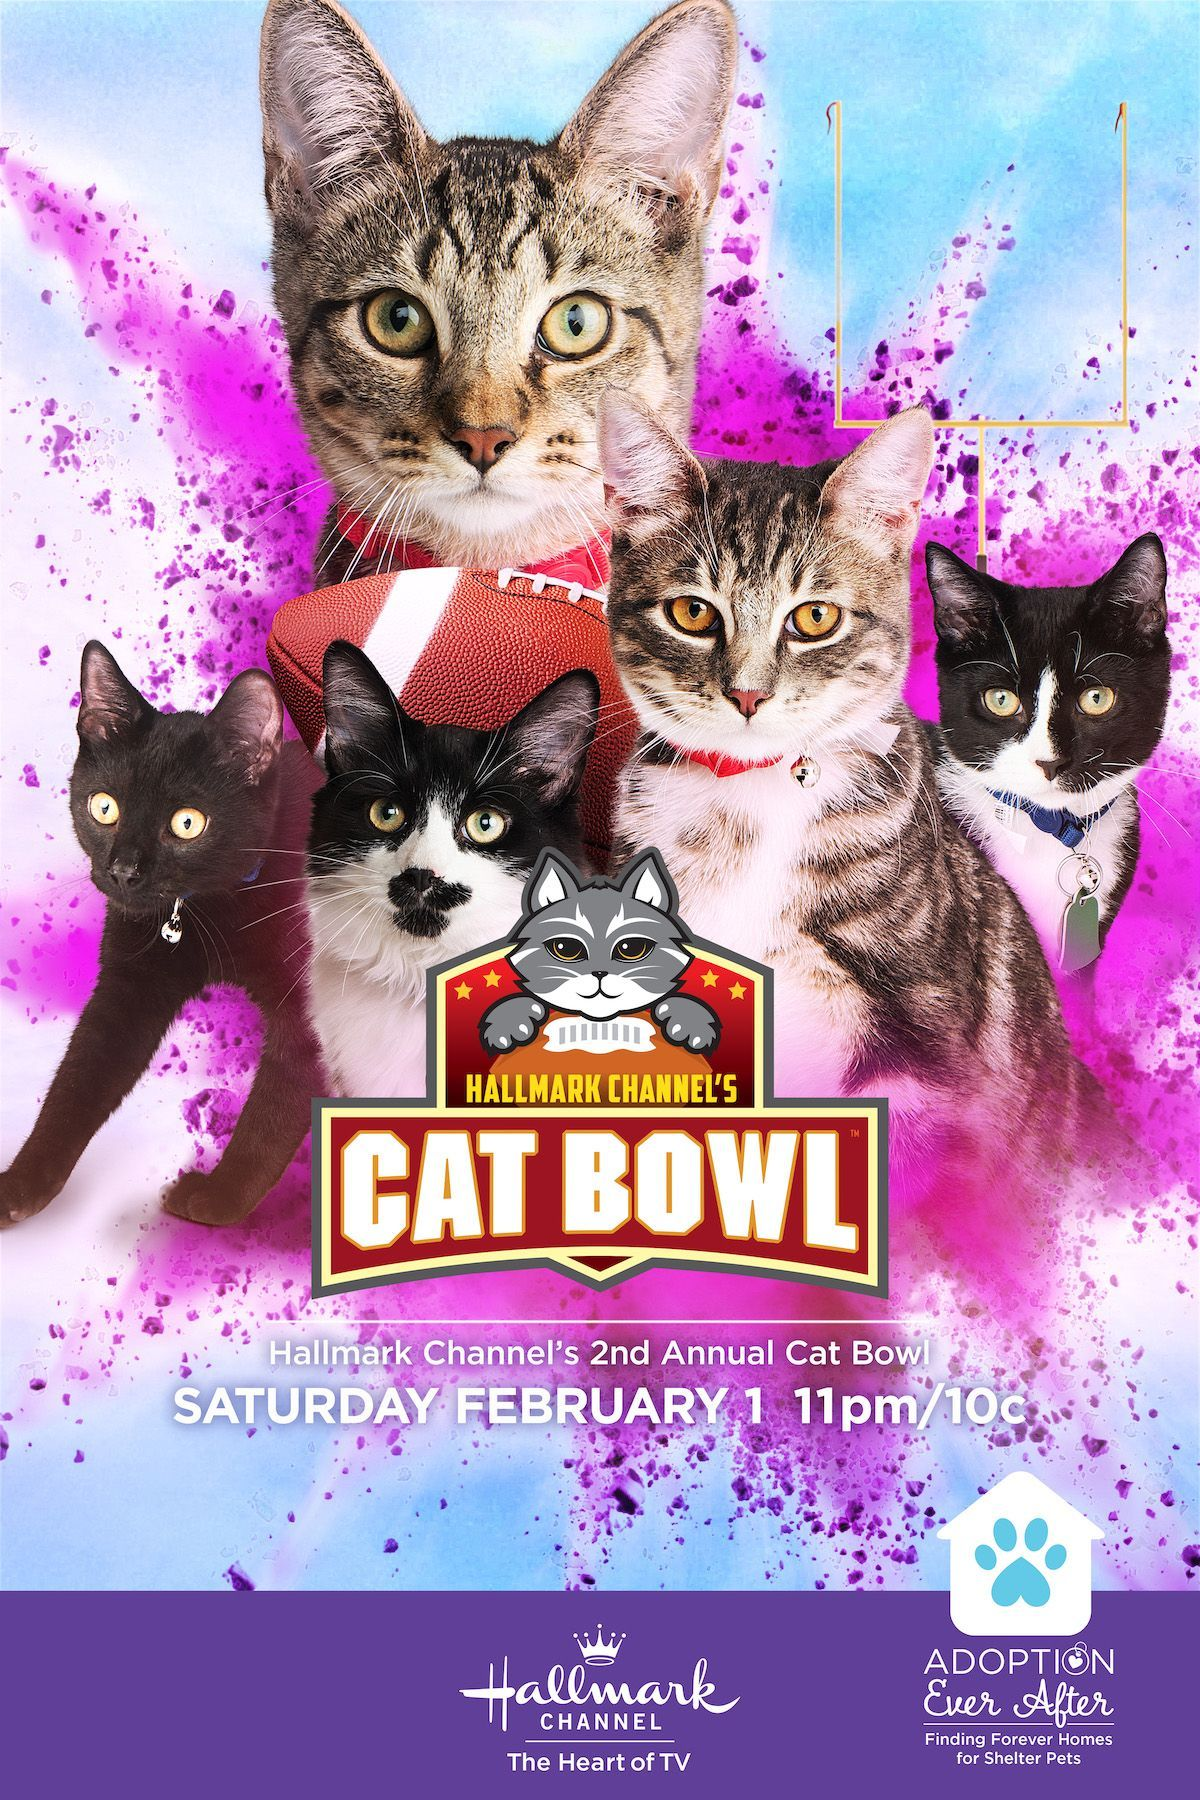 Cat Bowl Ii Featuring Senior Cats Ready For Action And Adoption Premieres On February 1 Only On Hal In 2020 Christmas Movies On Tv Cat Bowls Family Christmas Movies